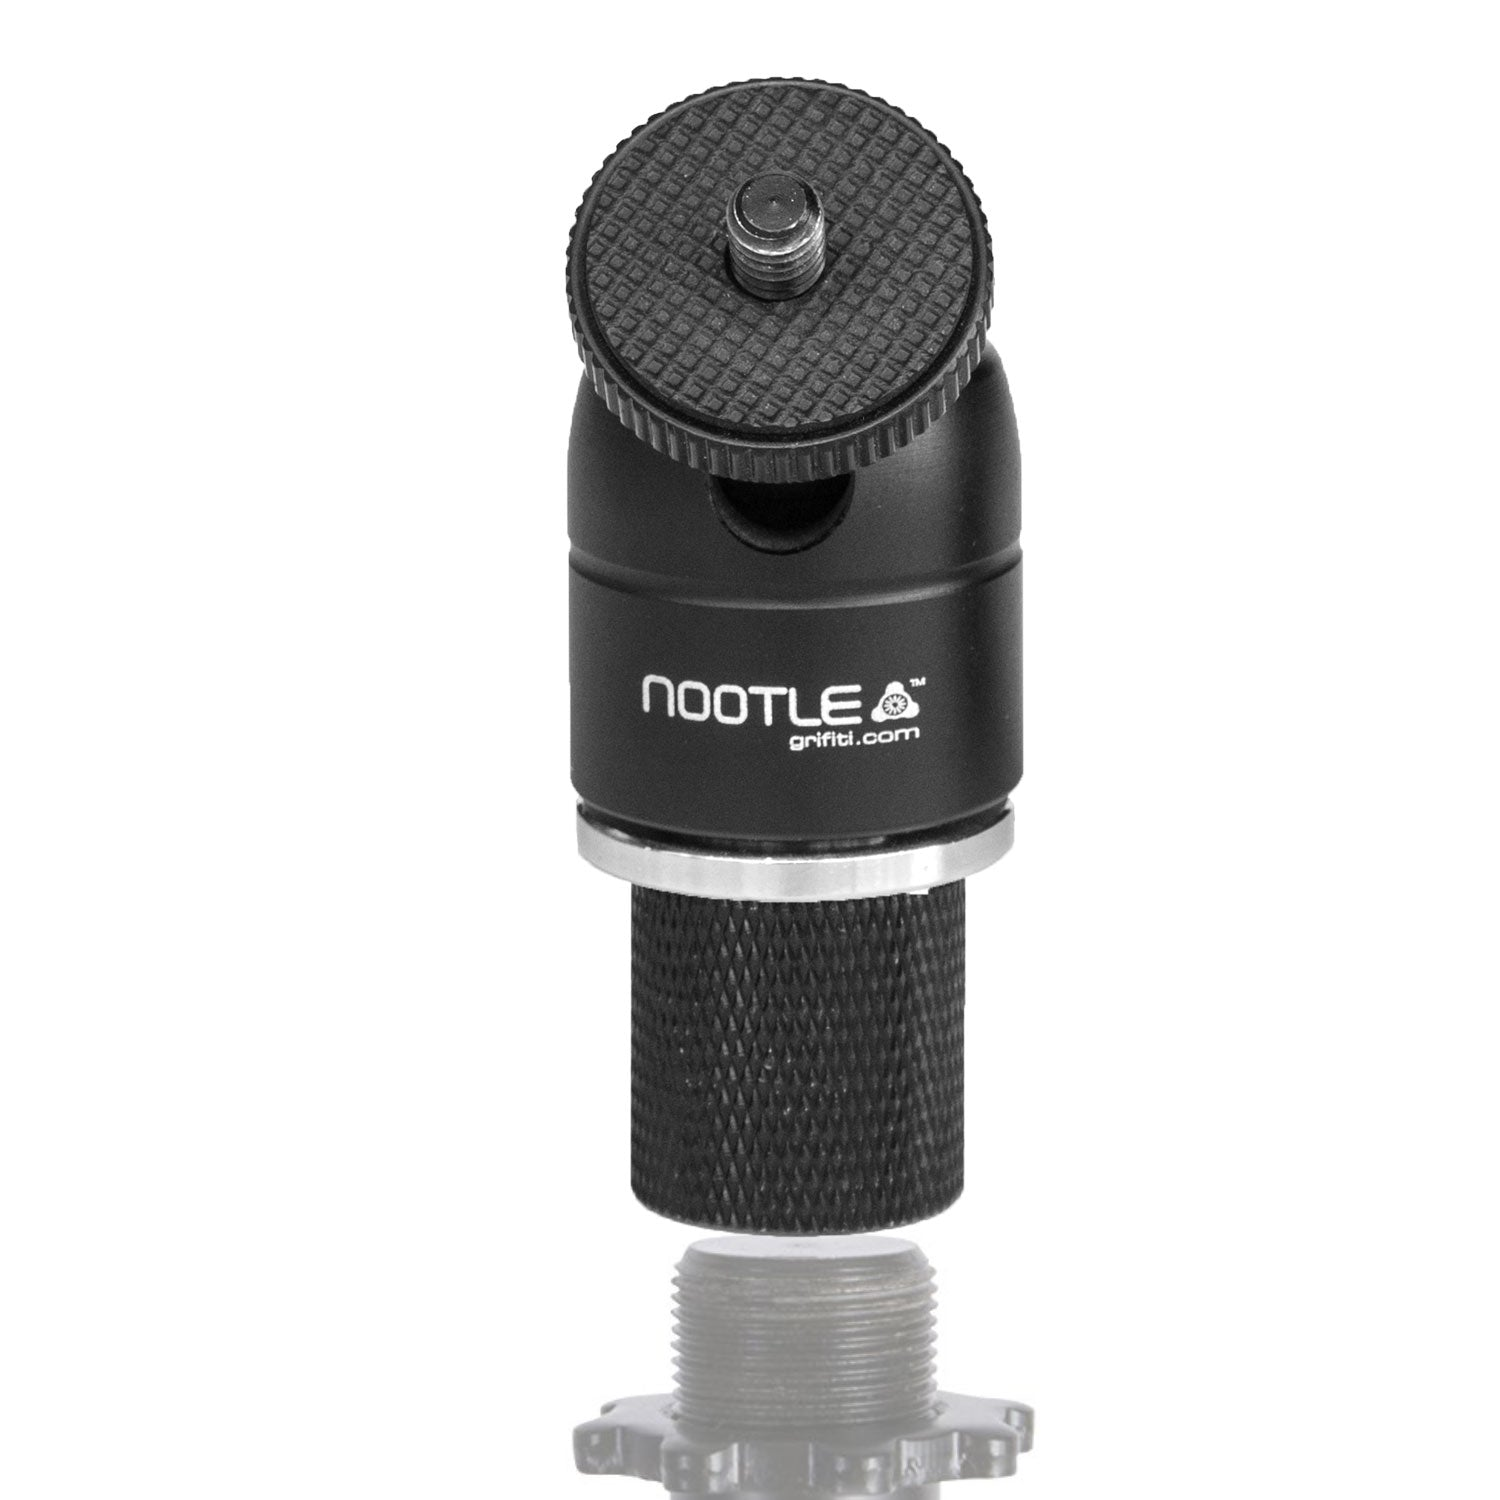 Nootle Mic / Music Stand Adaptor + Mini Ball Head - Grifiti